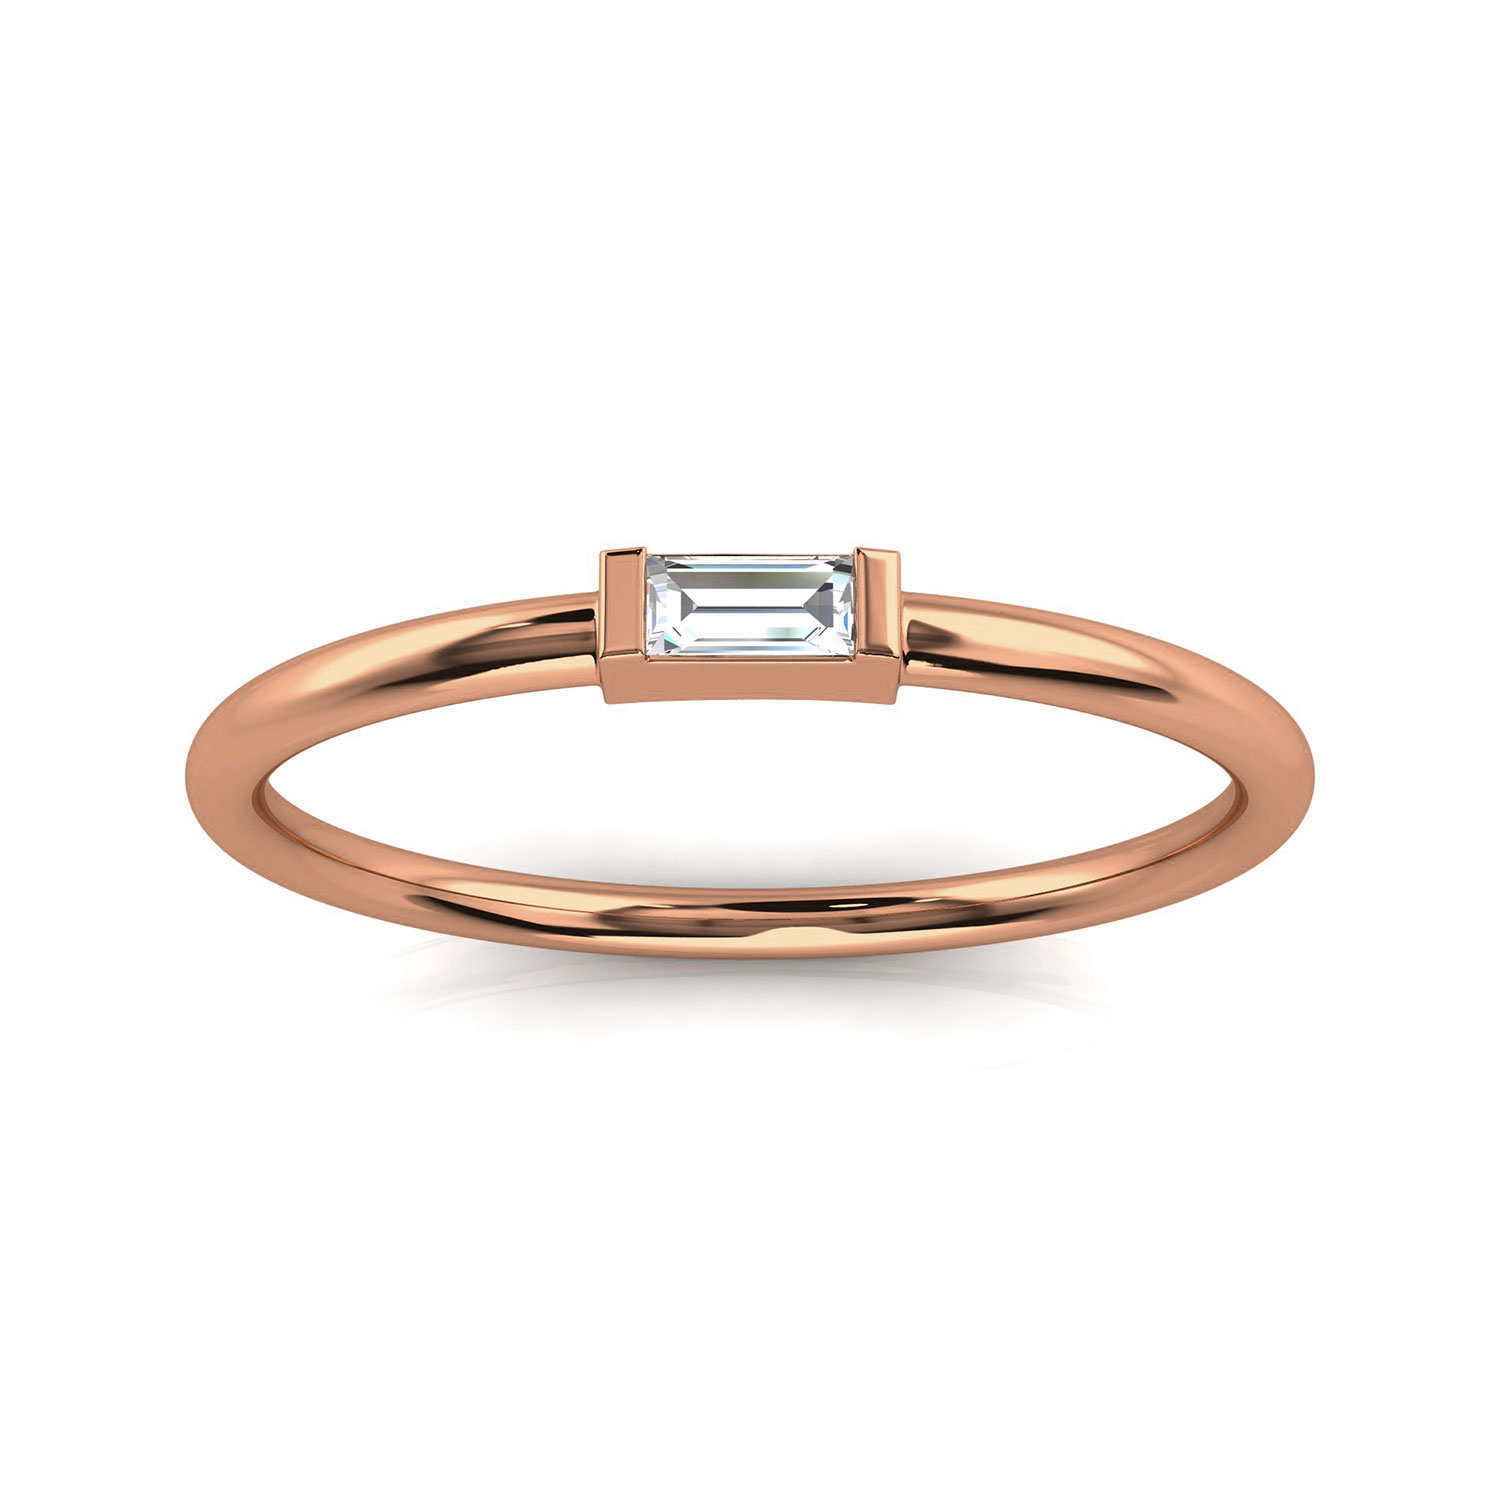 14K Rose Gold Minimalist Lilach Baguette Solitaire Diamond Ring ( Center- 0.06 Carat)